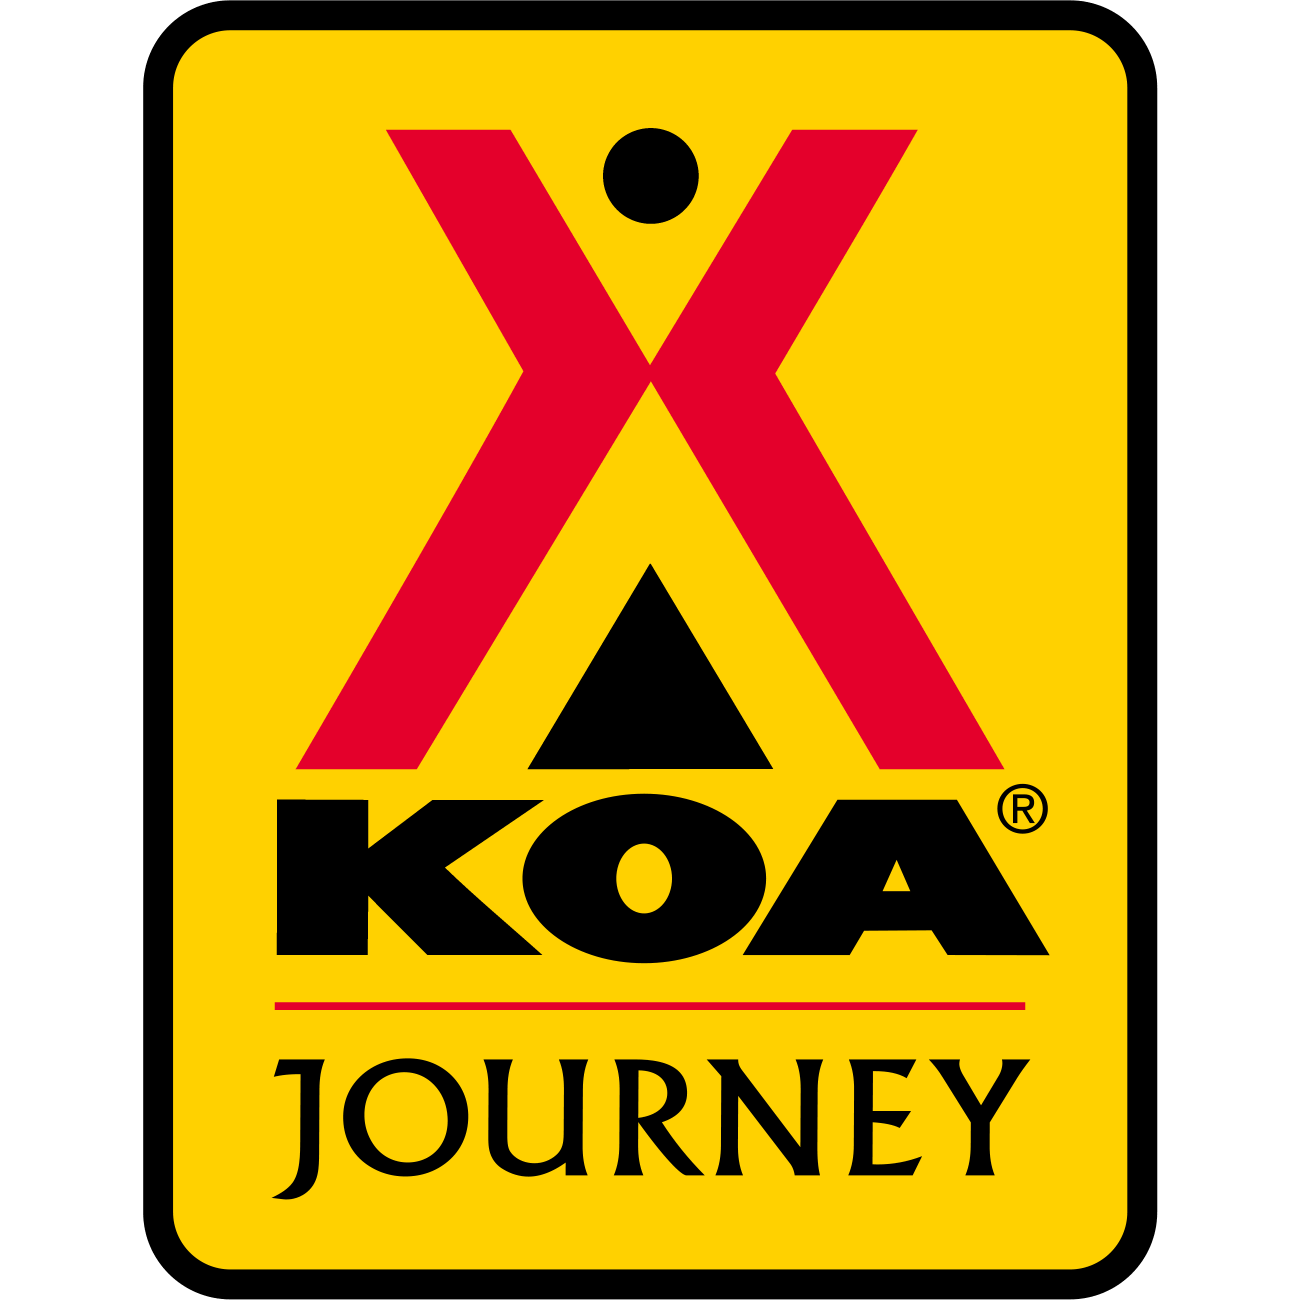 Pasco / Tri-Cities KOA Journey